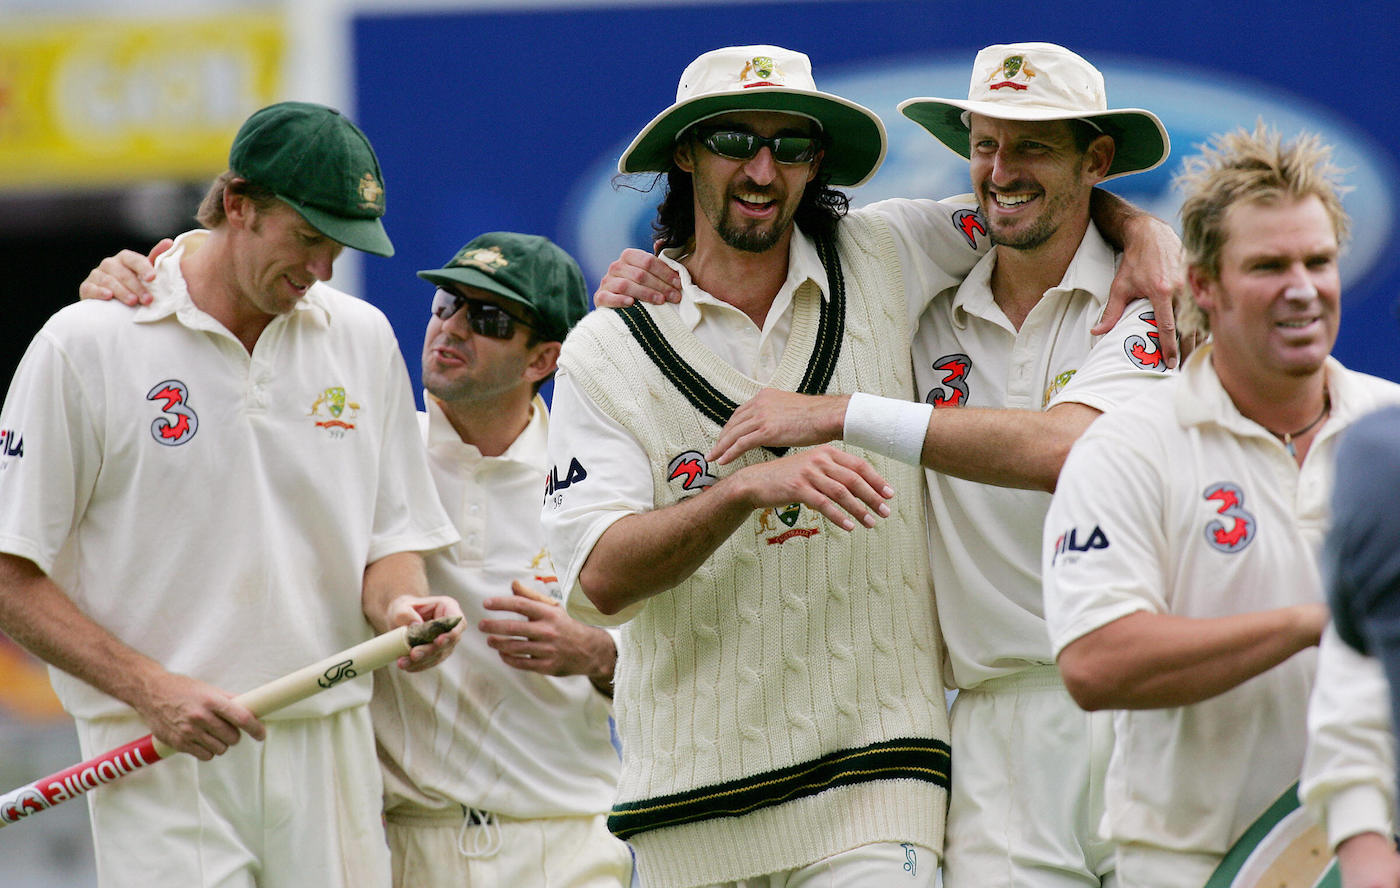 Glenn McGrath, Ricky Ponting, Jason Gillespie, Michael Kasprowicz and Shane Warne celebrate as Australia demolishes New Zealand